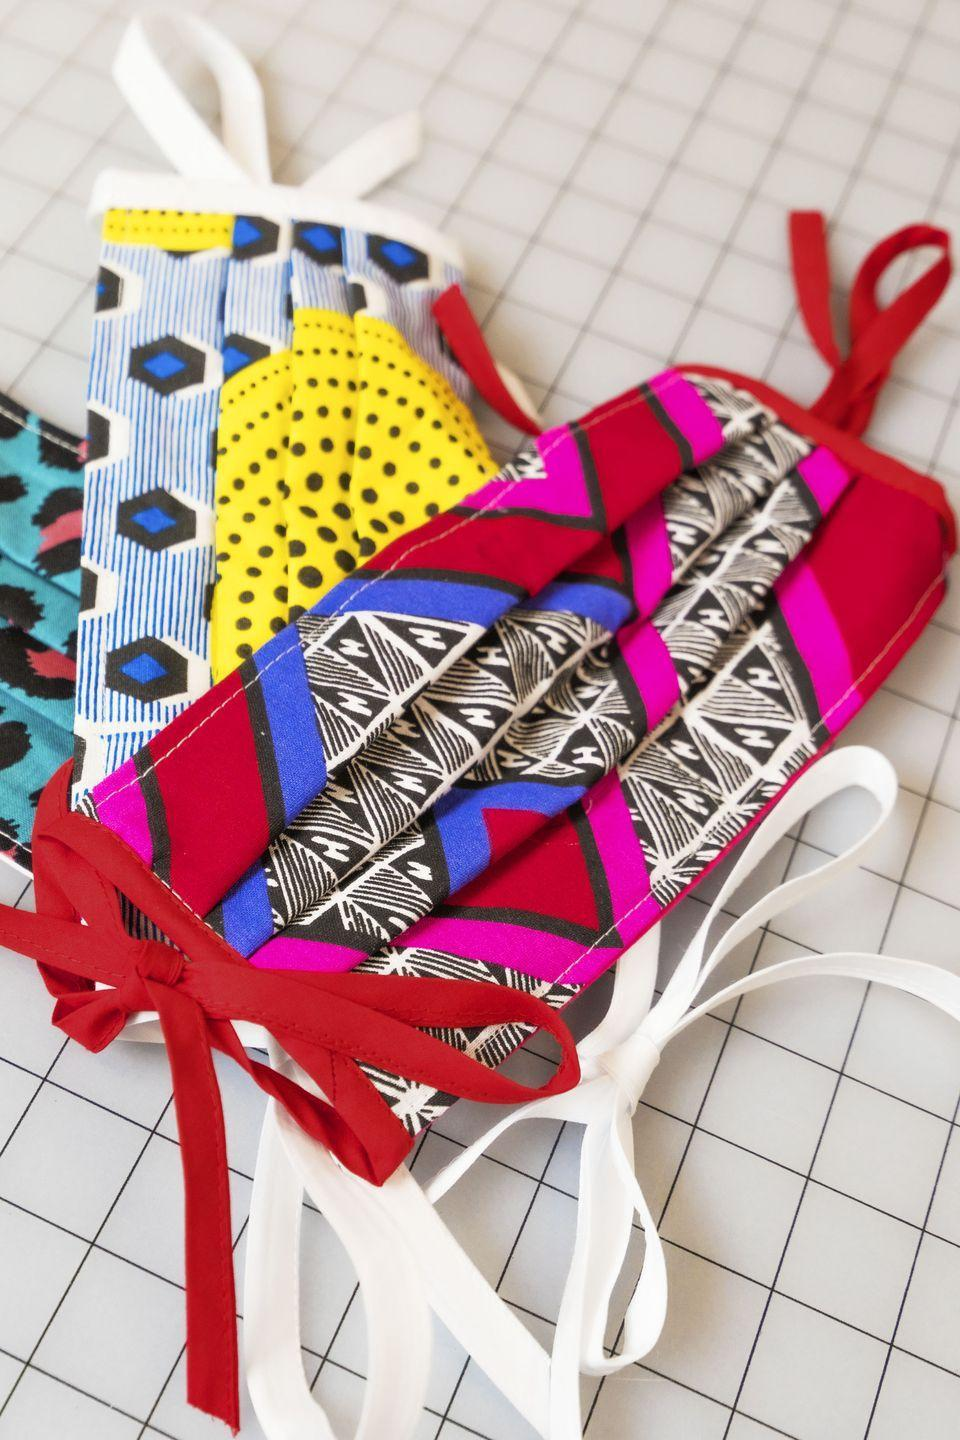 """<p>Impress Mom with your sewing skills! Make her a colorful DIY fabric mask to keep her (and others) safe when she ventures out.</p><p><em><strong>Get the tutorial at <a href=""""https://www.goodhousekeeping.com/health/a31902442/how-to-make-medical-face-masks/"""" rel=""""nofollow noopener"""" target=""""_blank"""" data-ylk=""""slk:Good Housekeeping"""" class=""""link rapid-noclick-resp"""">Good Housekeeping</a>.</strong></em></p>"""